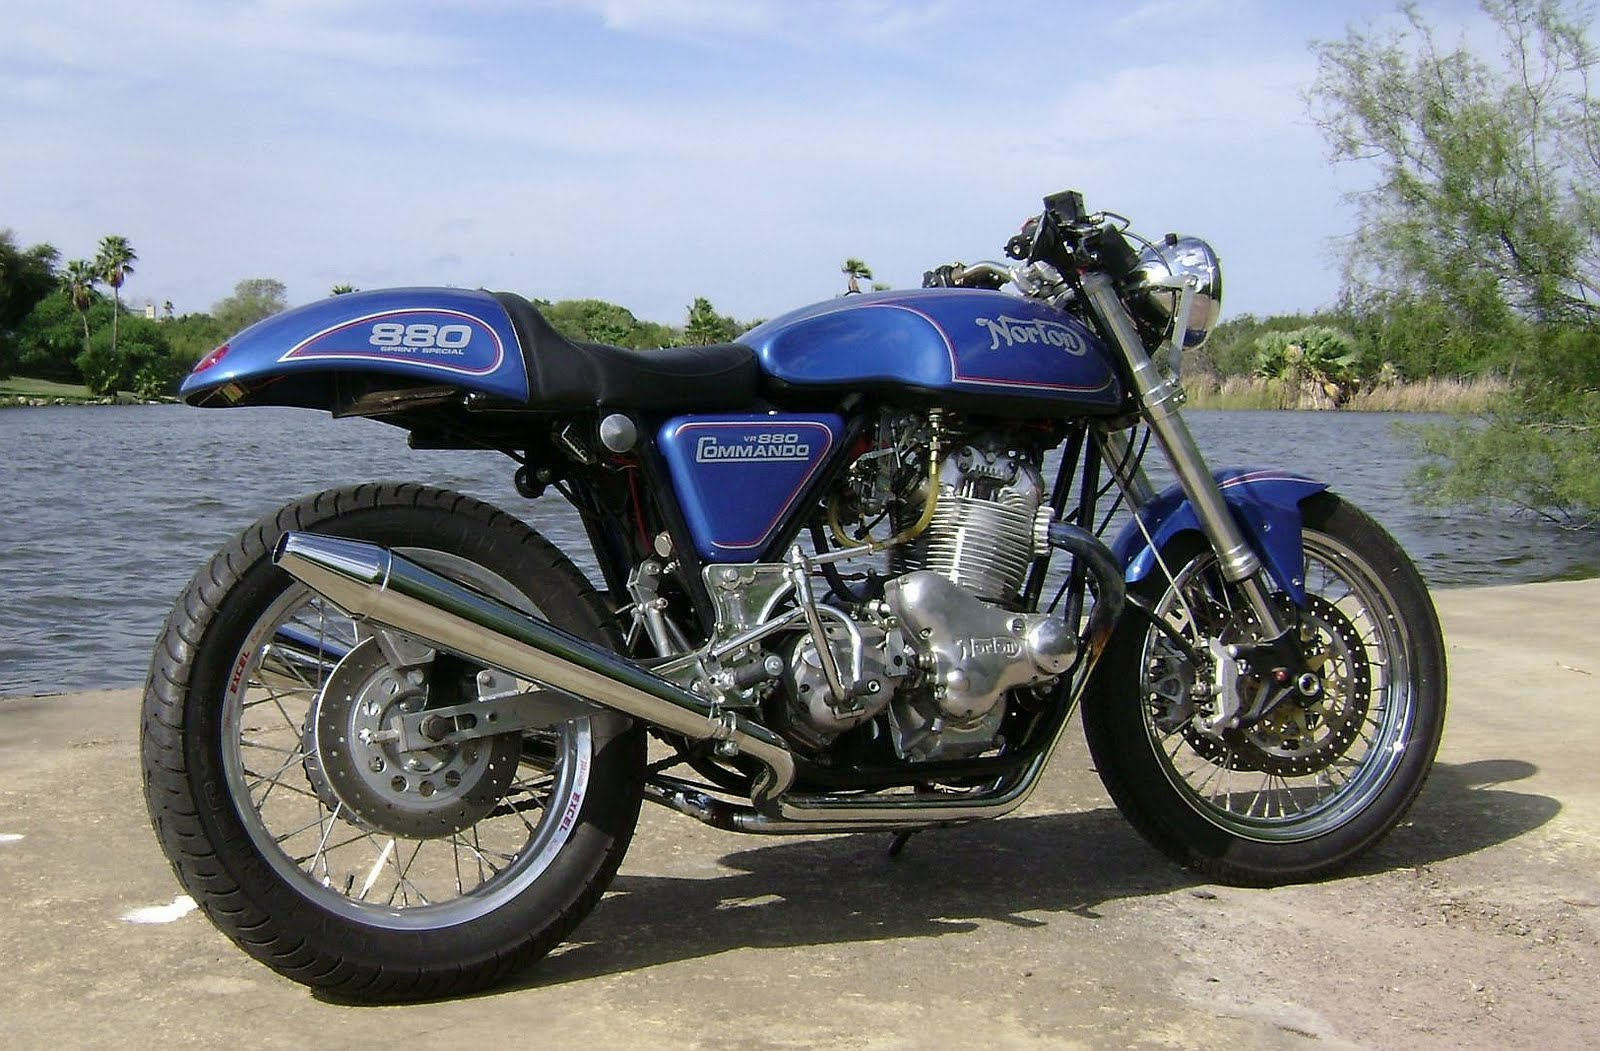 New Motorcycle Picture Of The Day